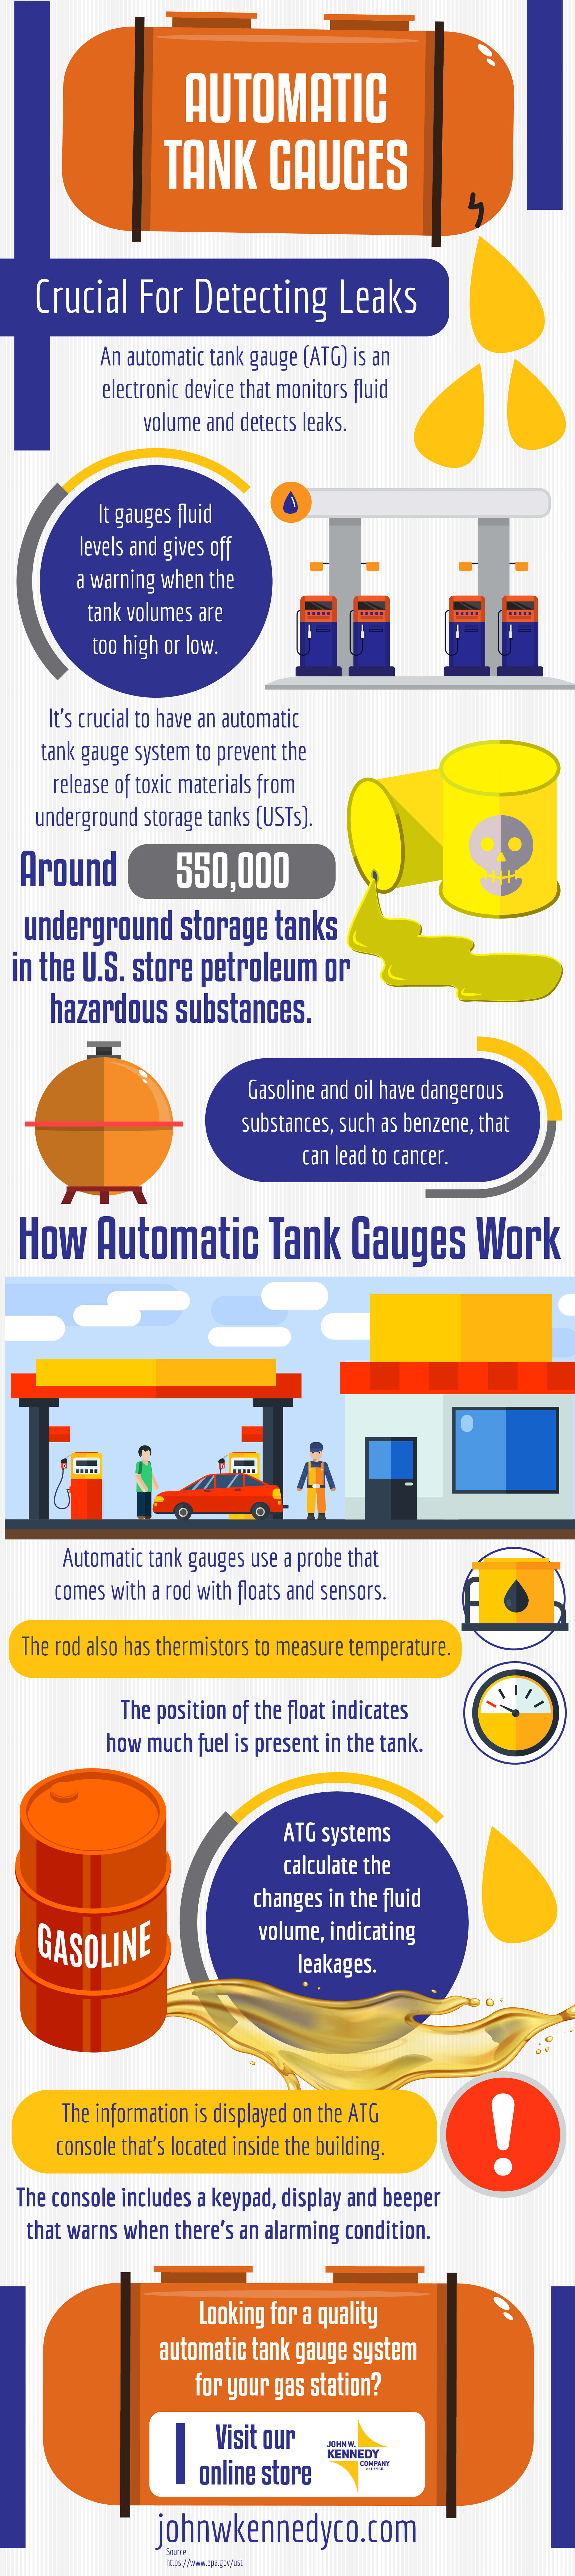 Automatic-Tank-Gauges-Crucial-for-detecting-leaks